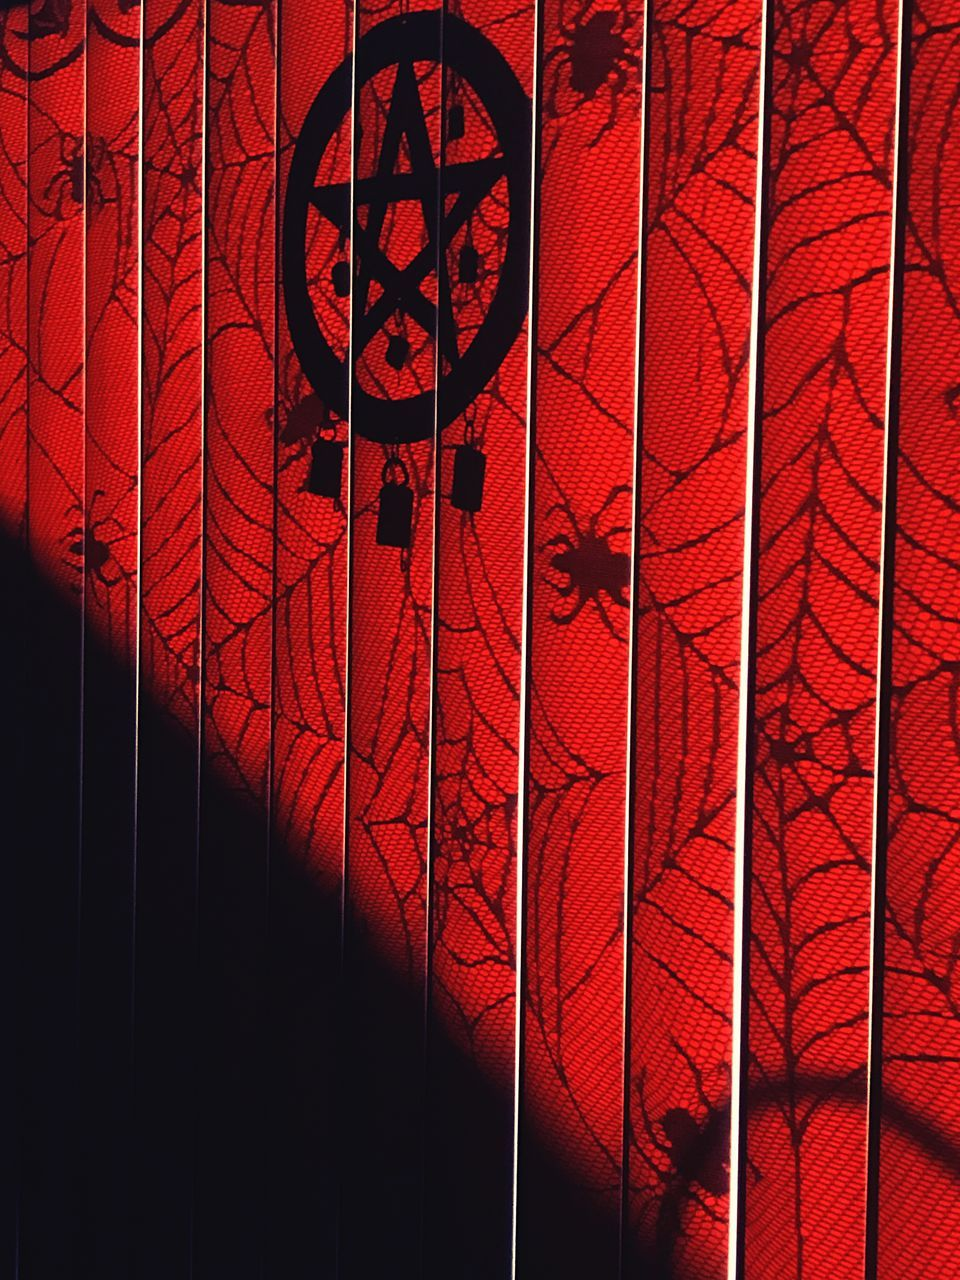 red, no people, full frame, outdoors, day, illuminated, architecture, close-up